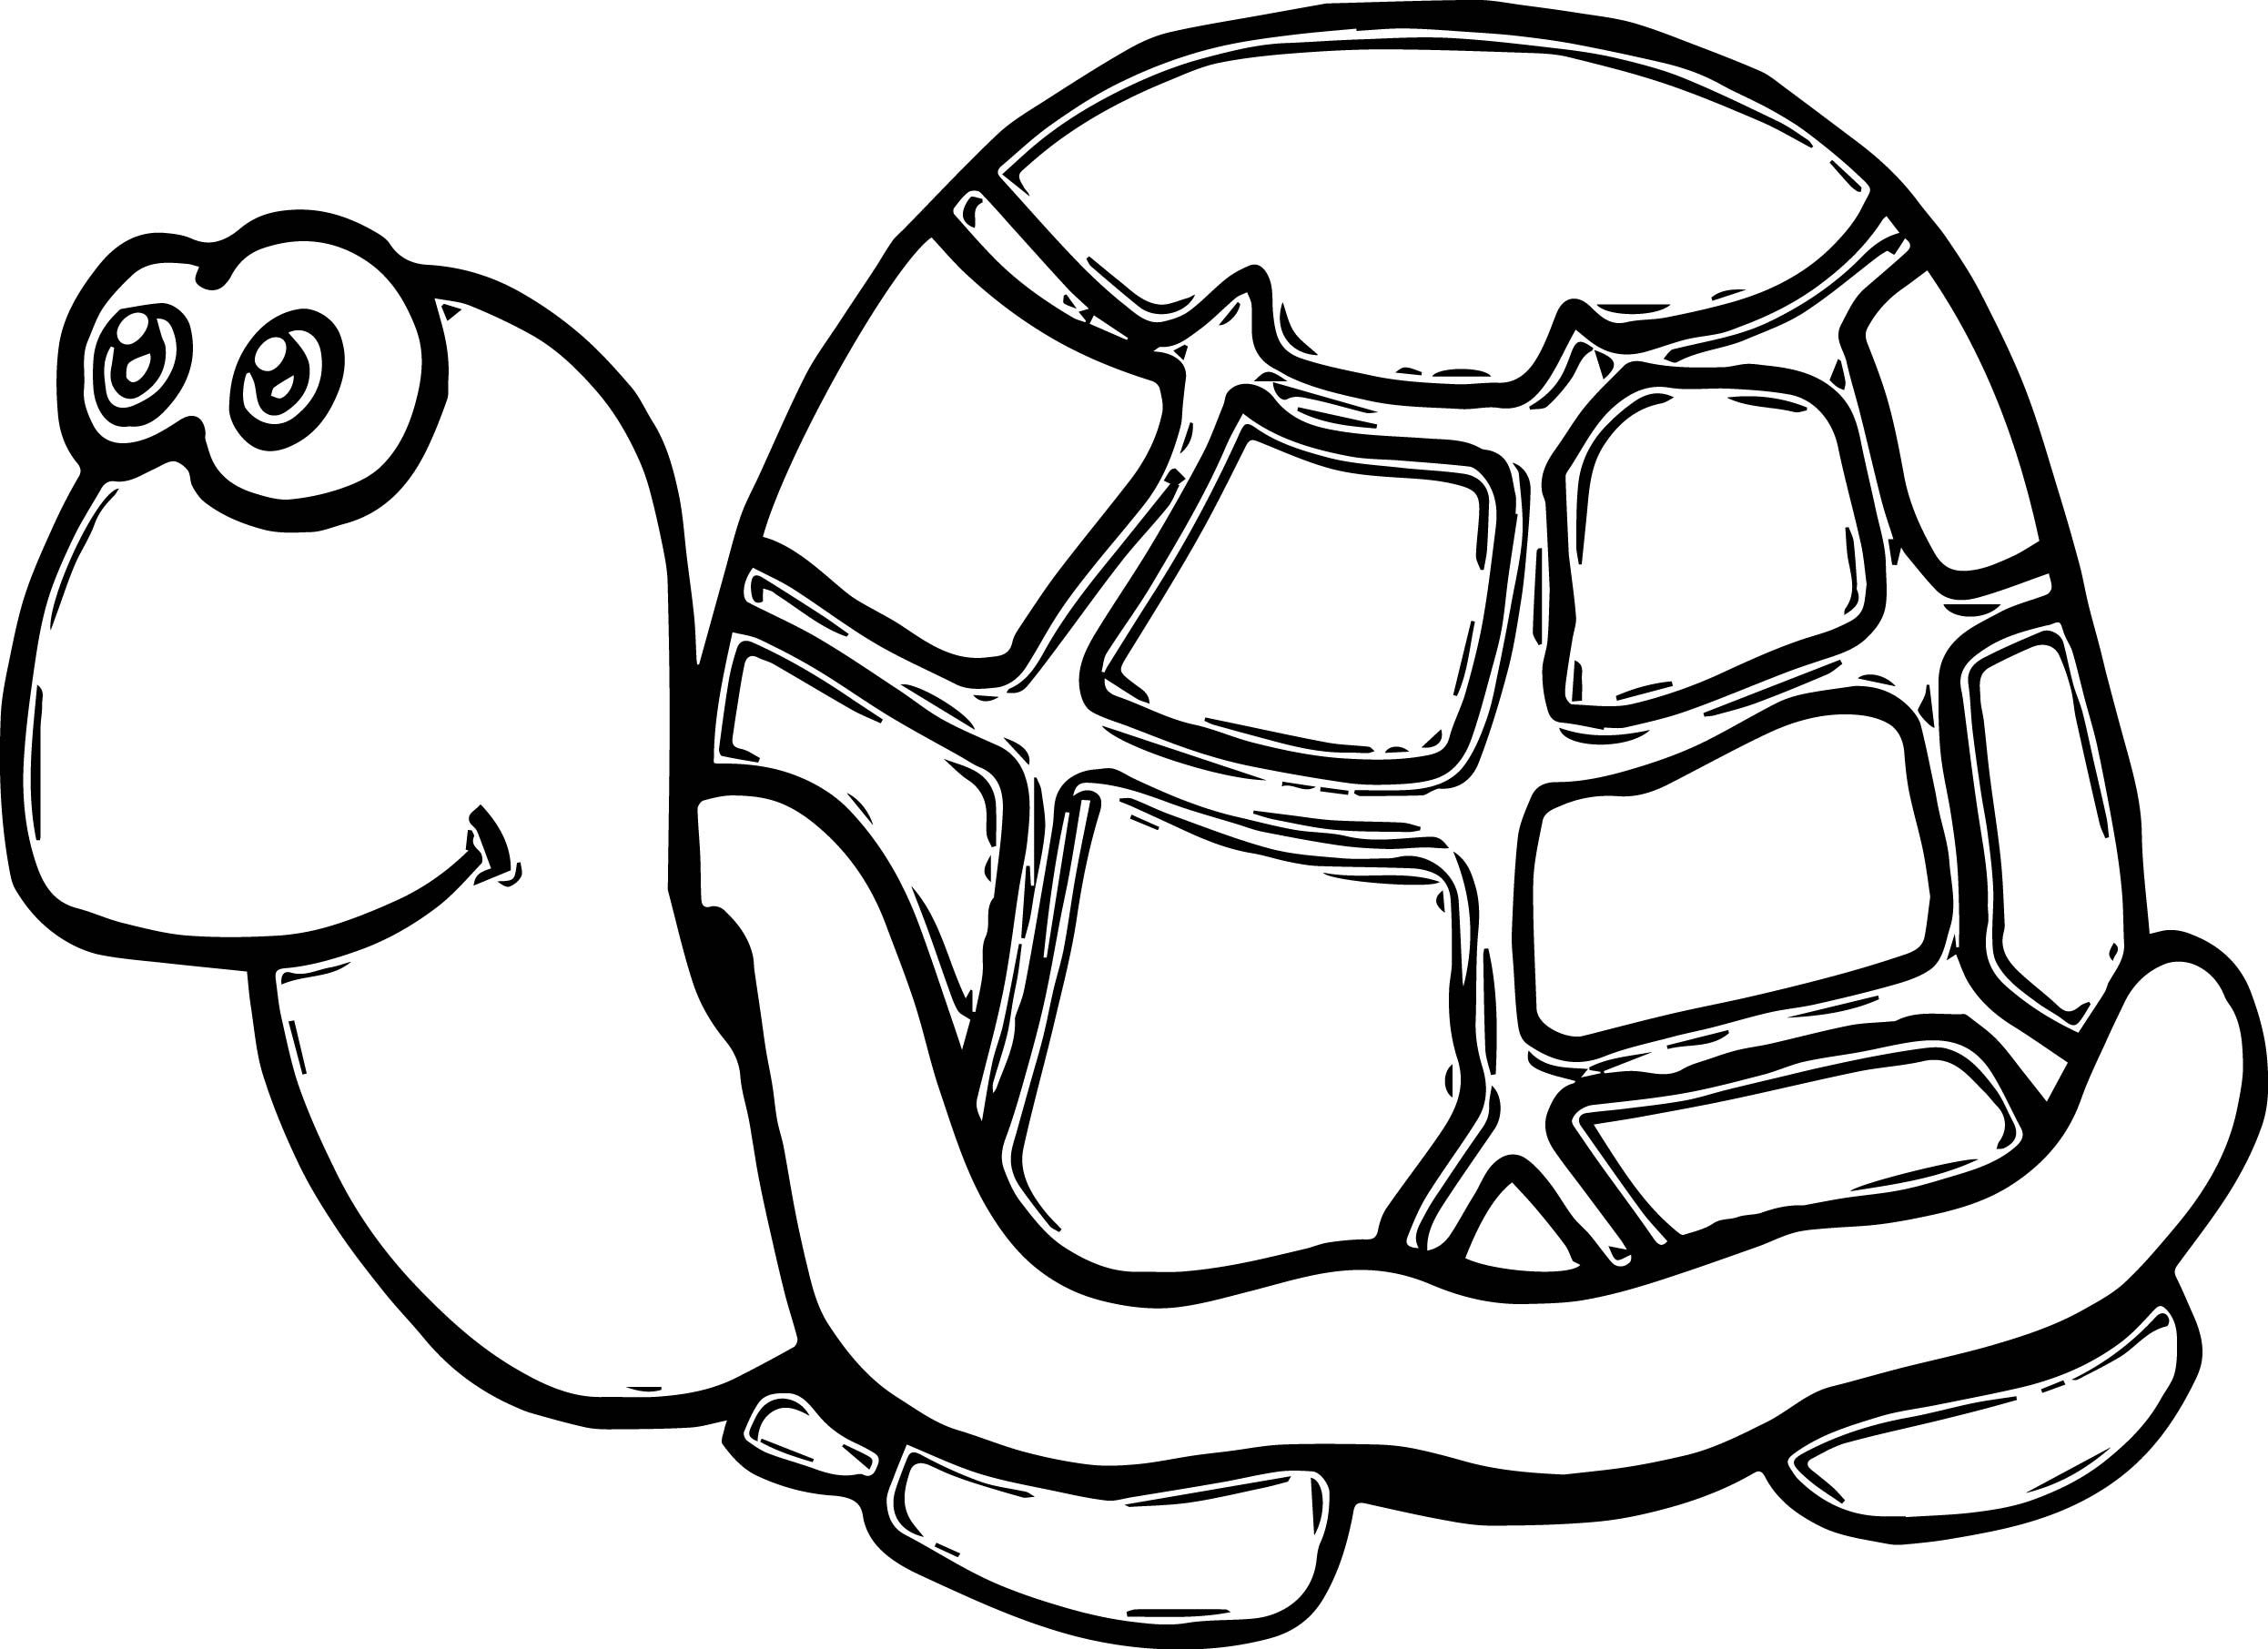 Awesome Cute Tortoise Funny Turtle Coloring Page Turtle Coloring Pages Cute Tortoise Turtles Funny